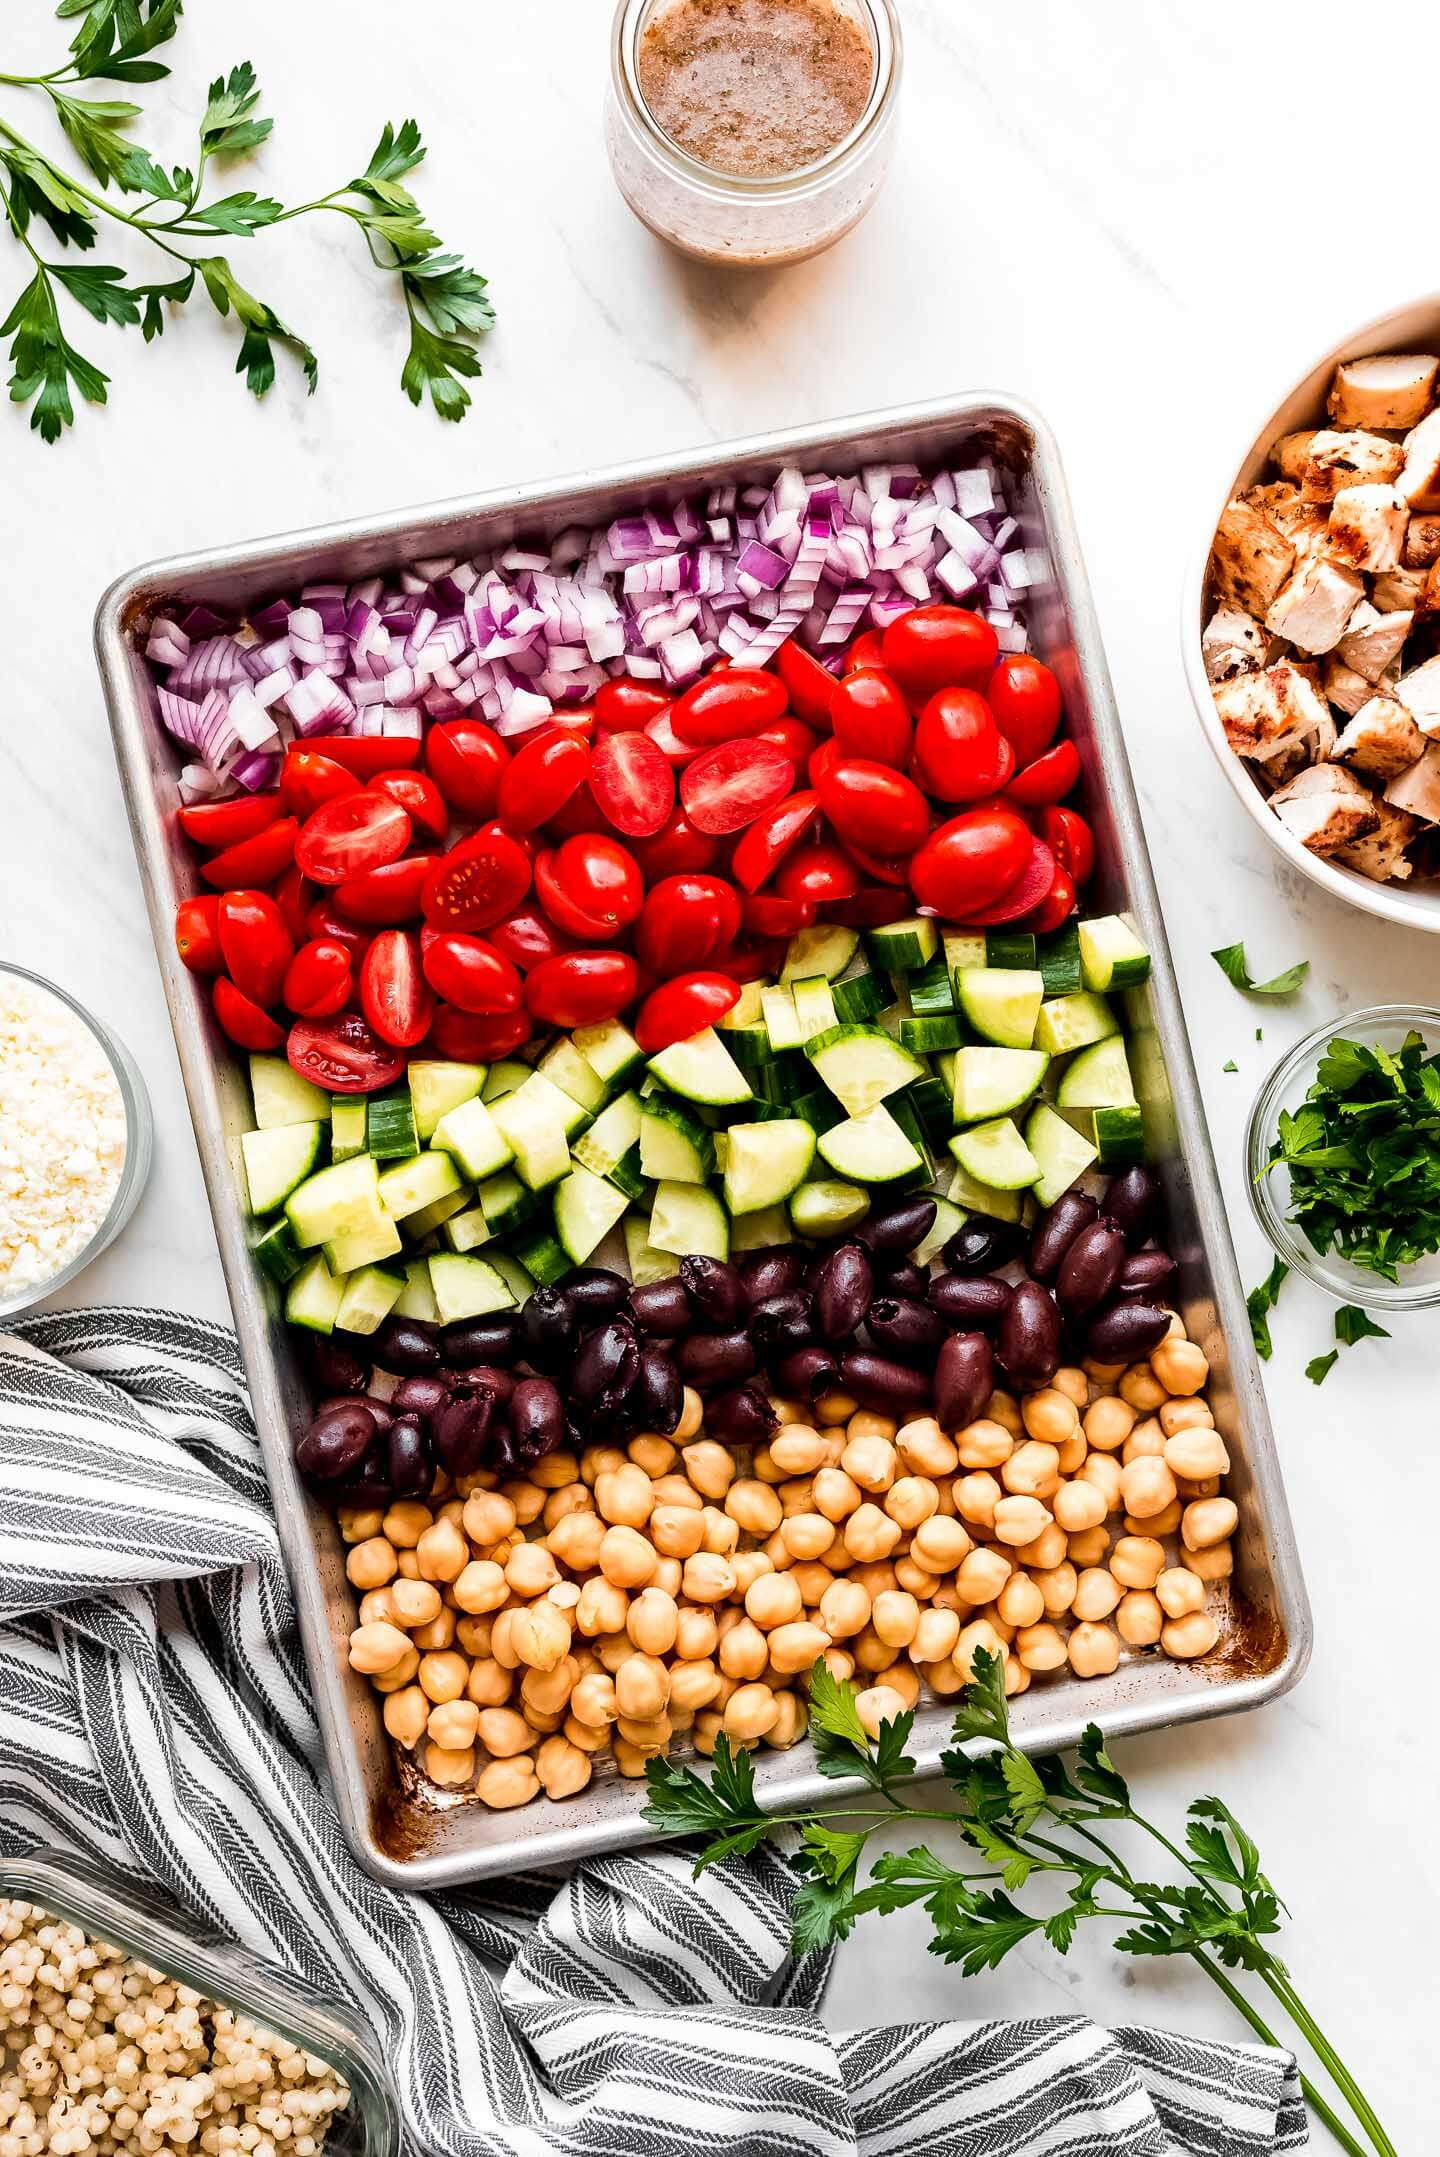 A baking sheet with diced red onion, cherry tomatoes, cucumbers, Kalamata olives, and chickpeas.